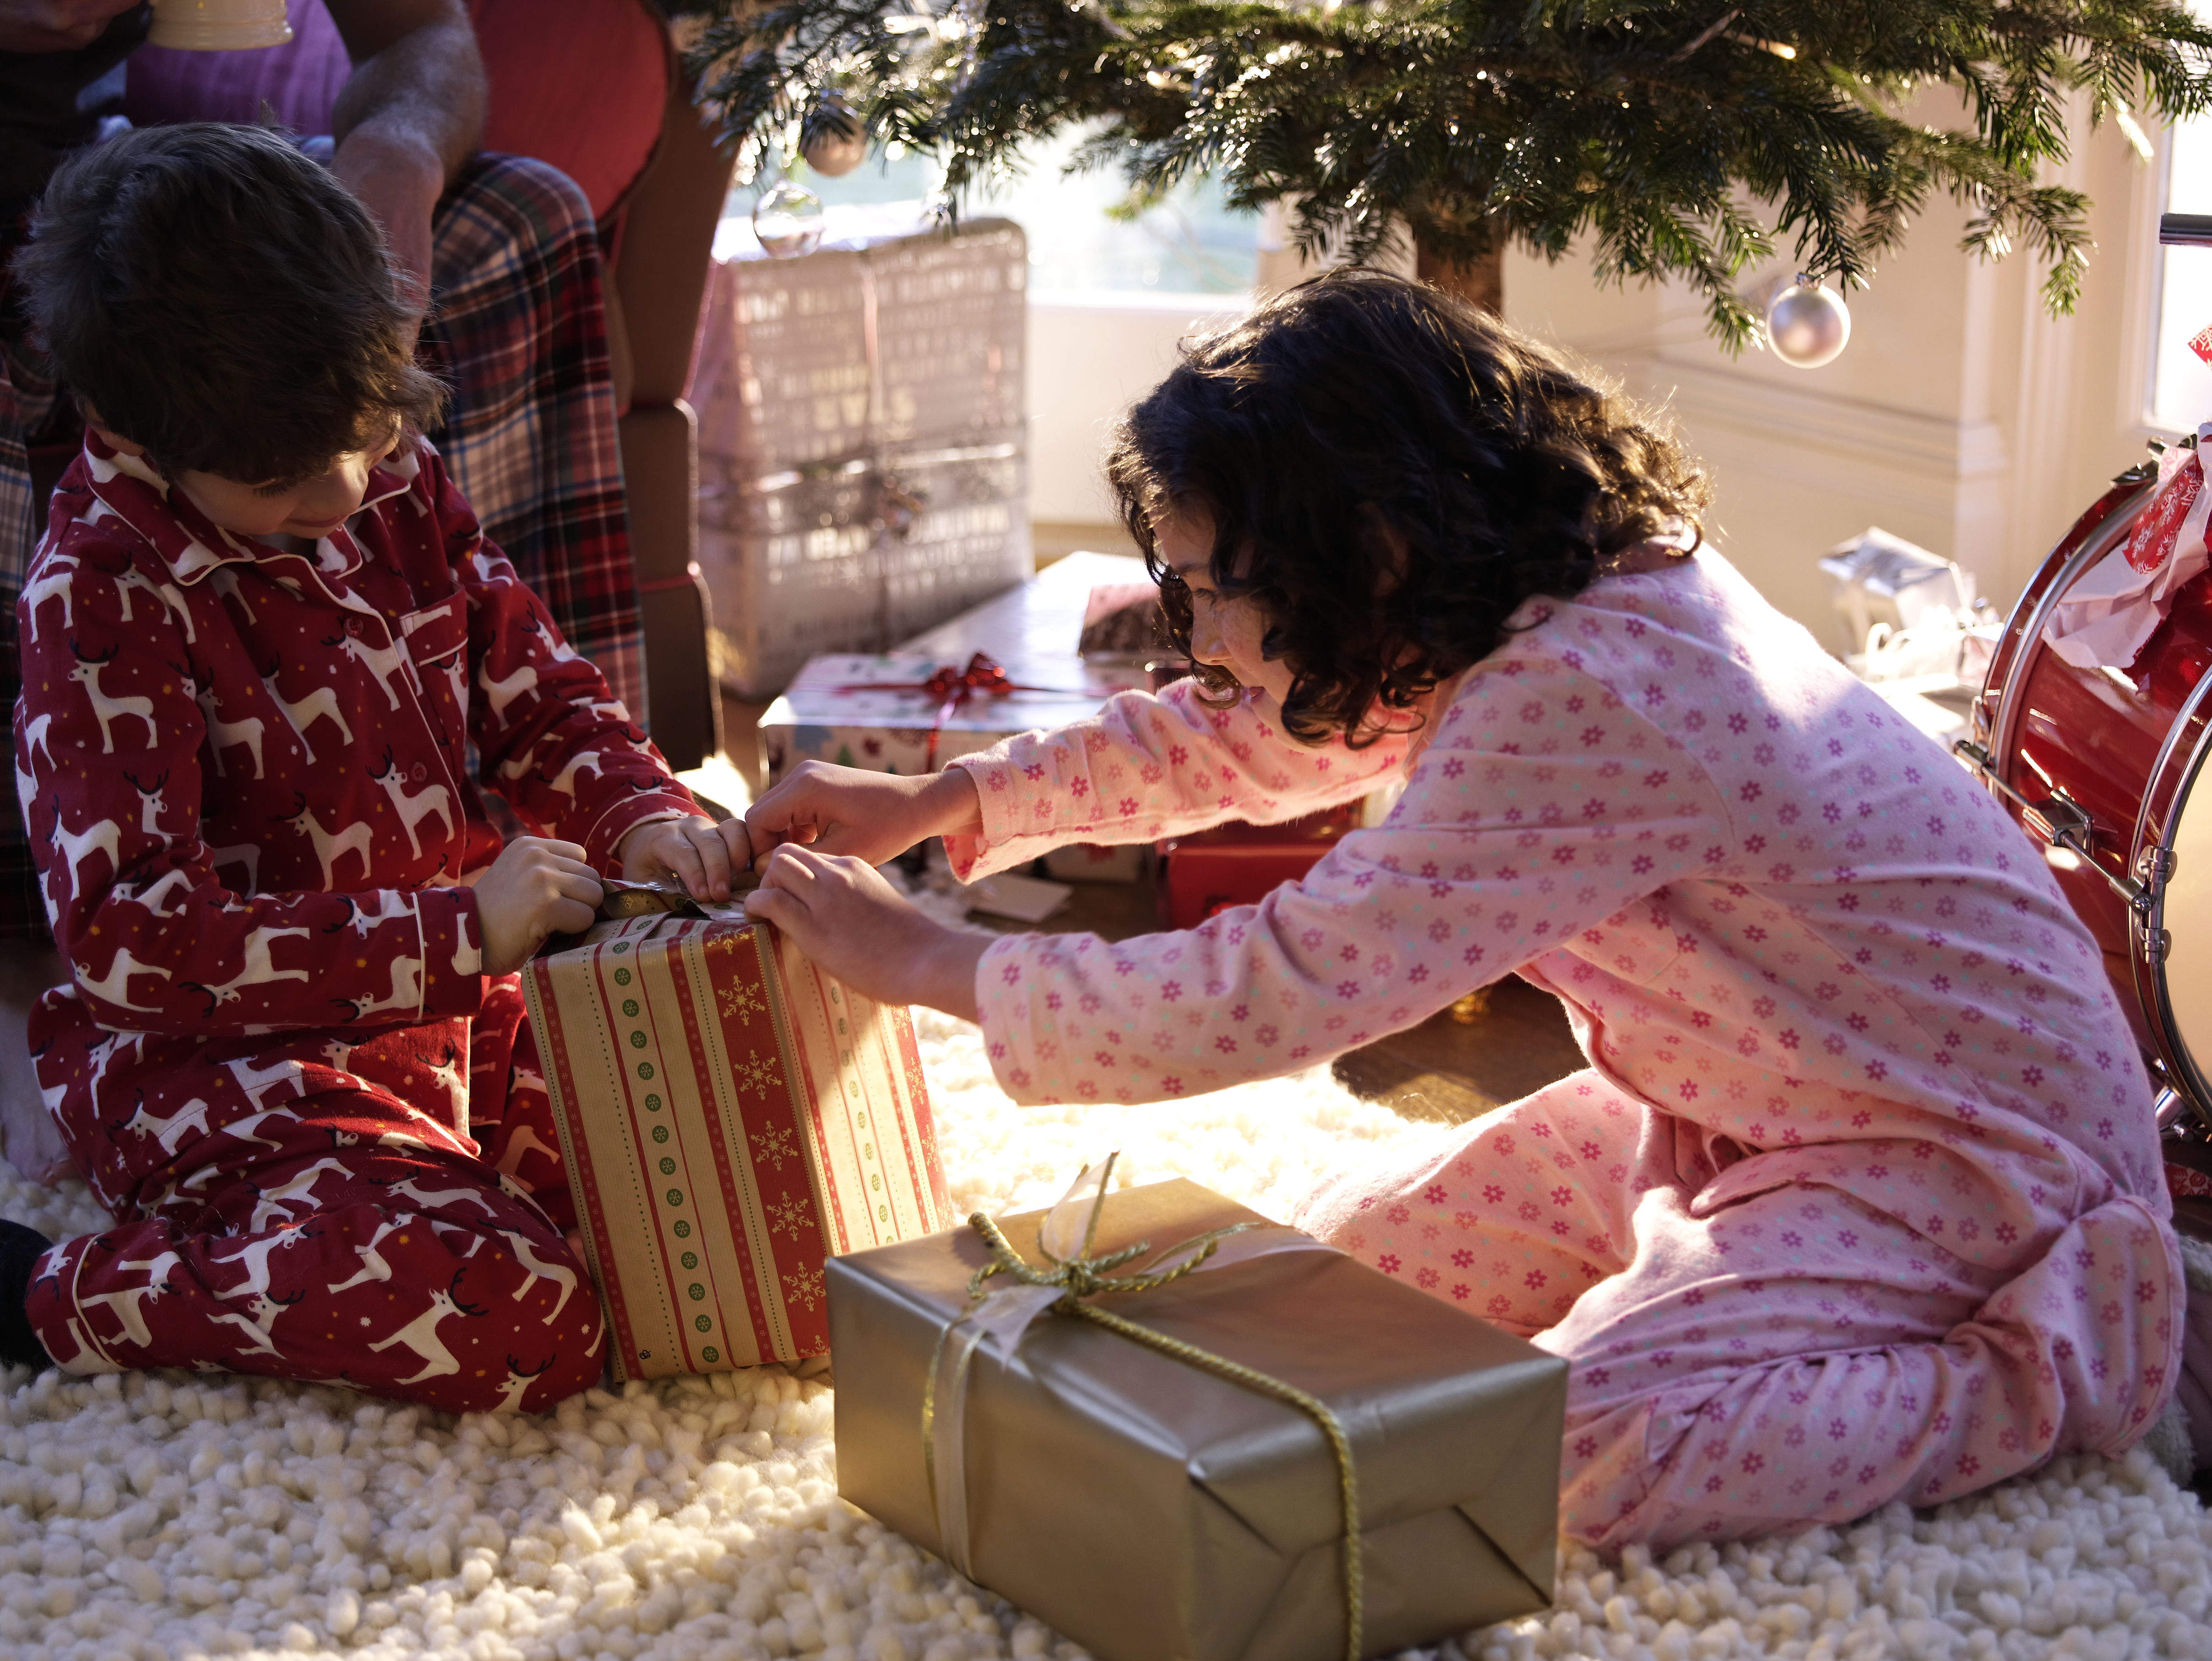 Brother and sister (6-11) unwrapping Christmas gifts